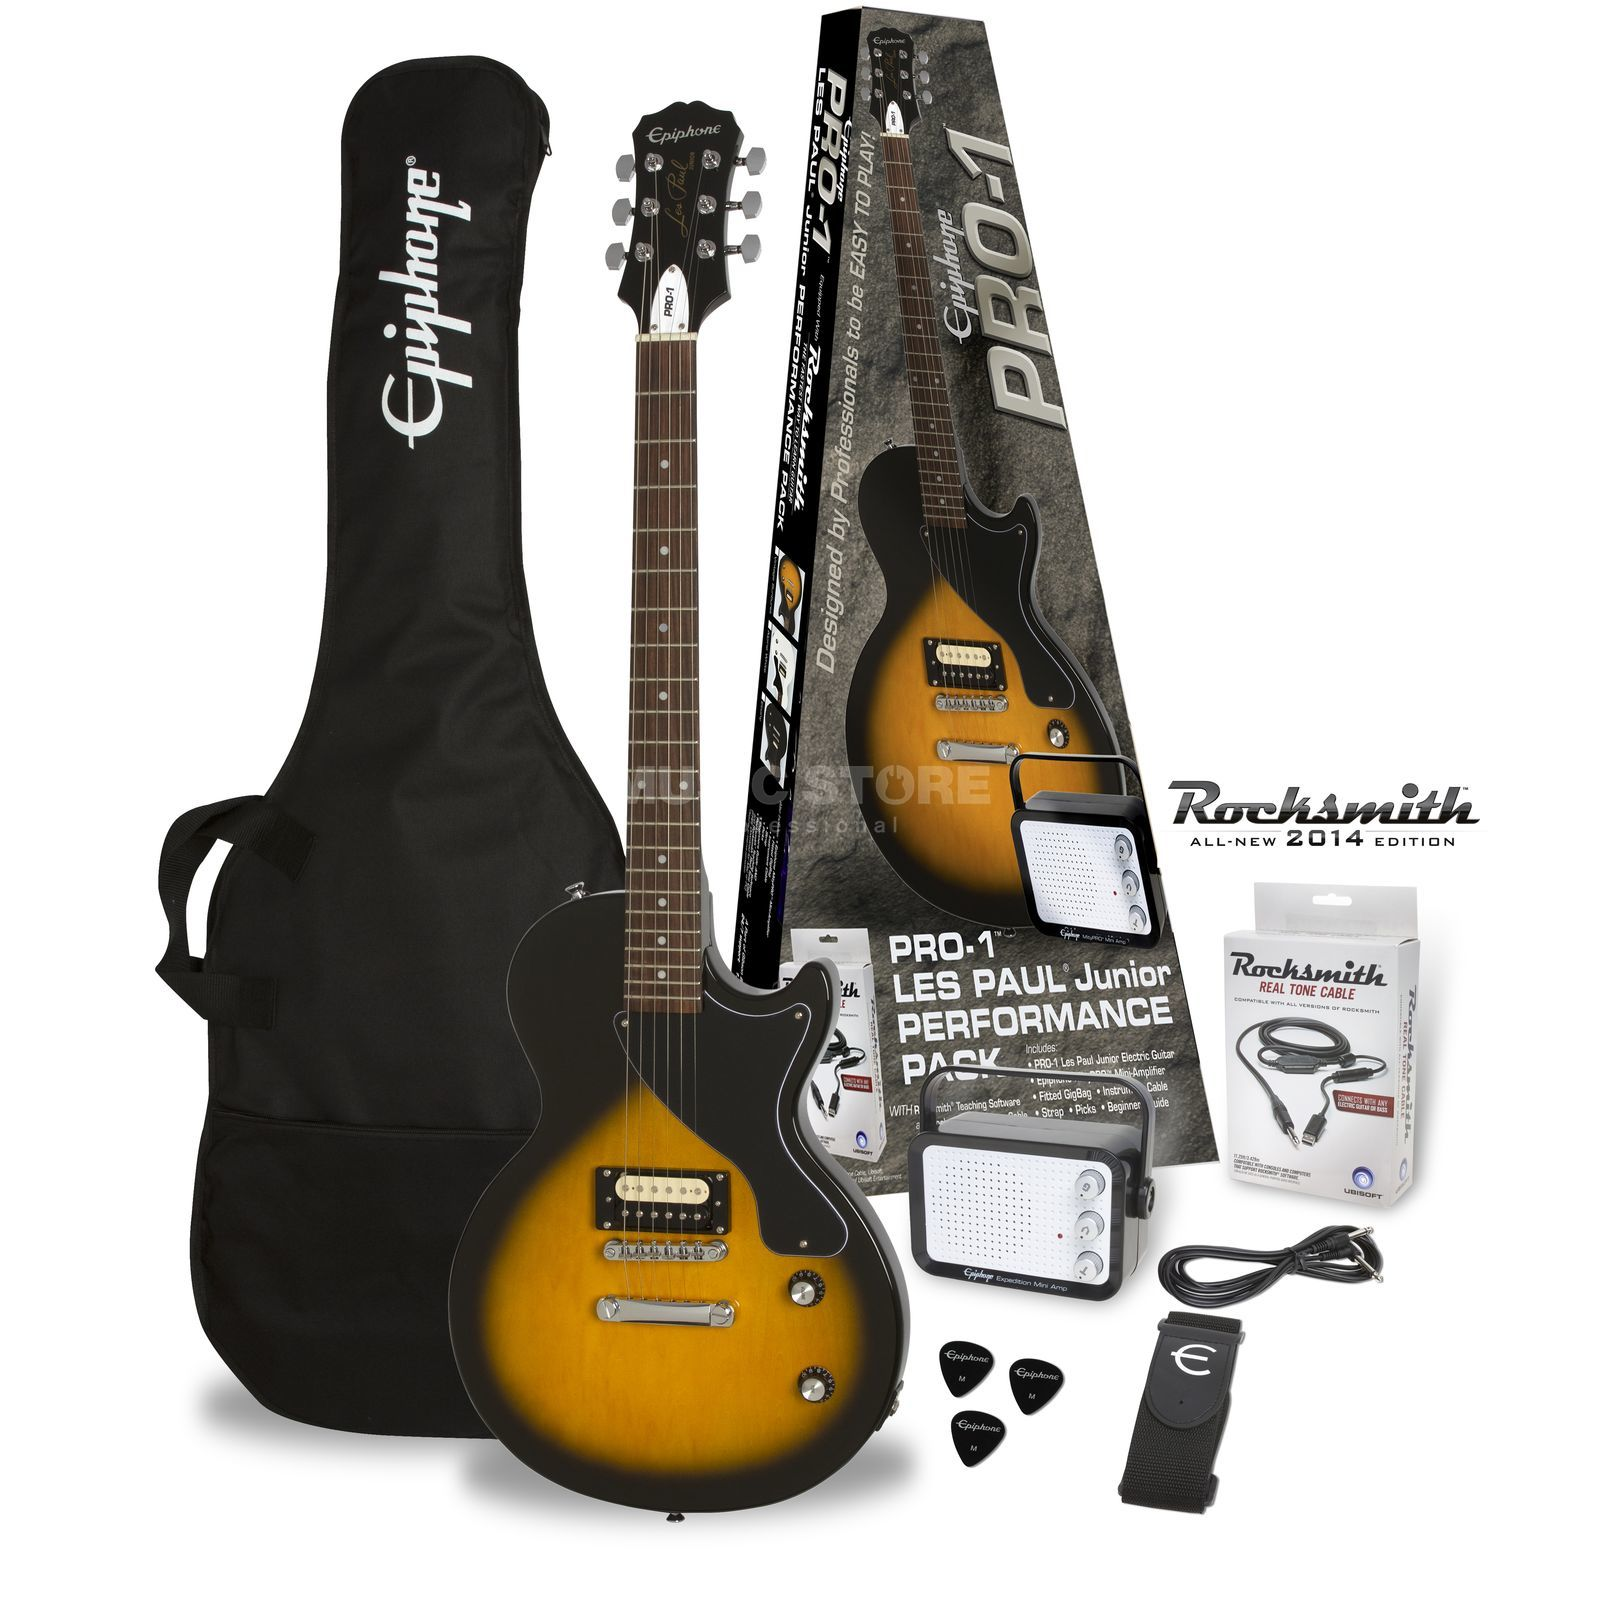 Epiphone PRO-1 Les Paul Junior Performance Pack Vintage Sunburst Imagem do produto